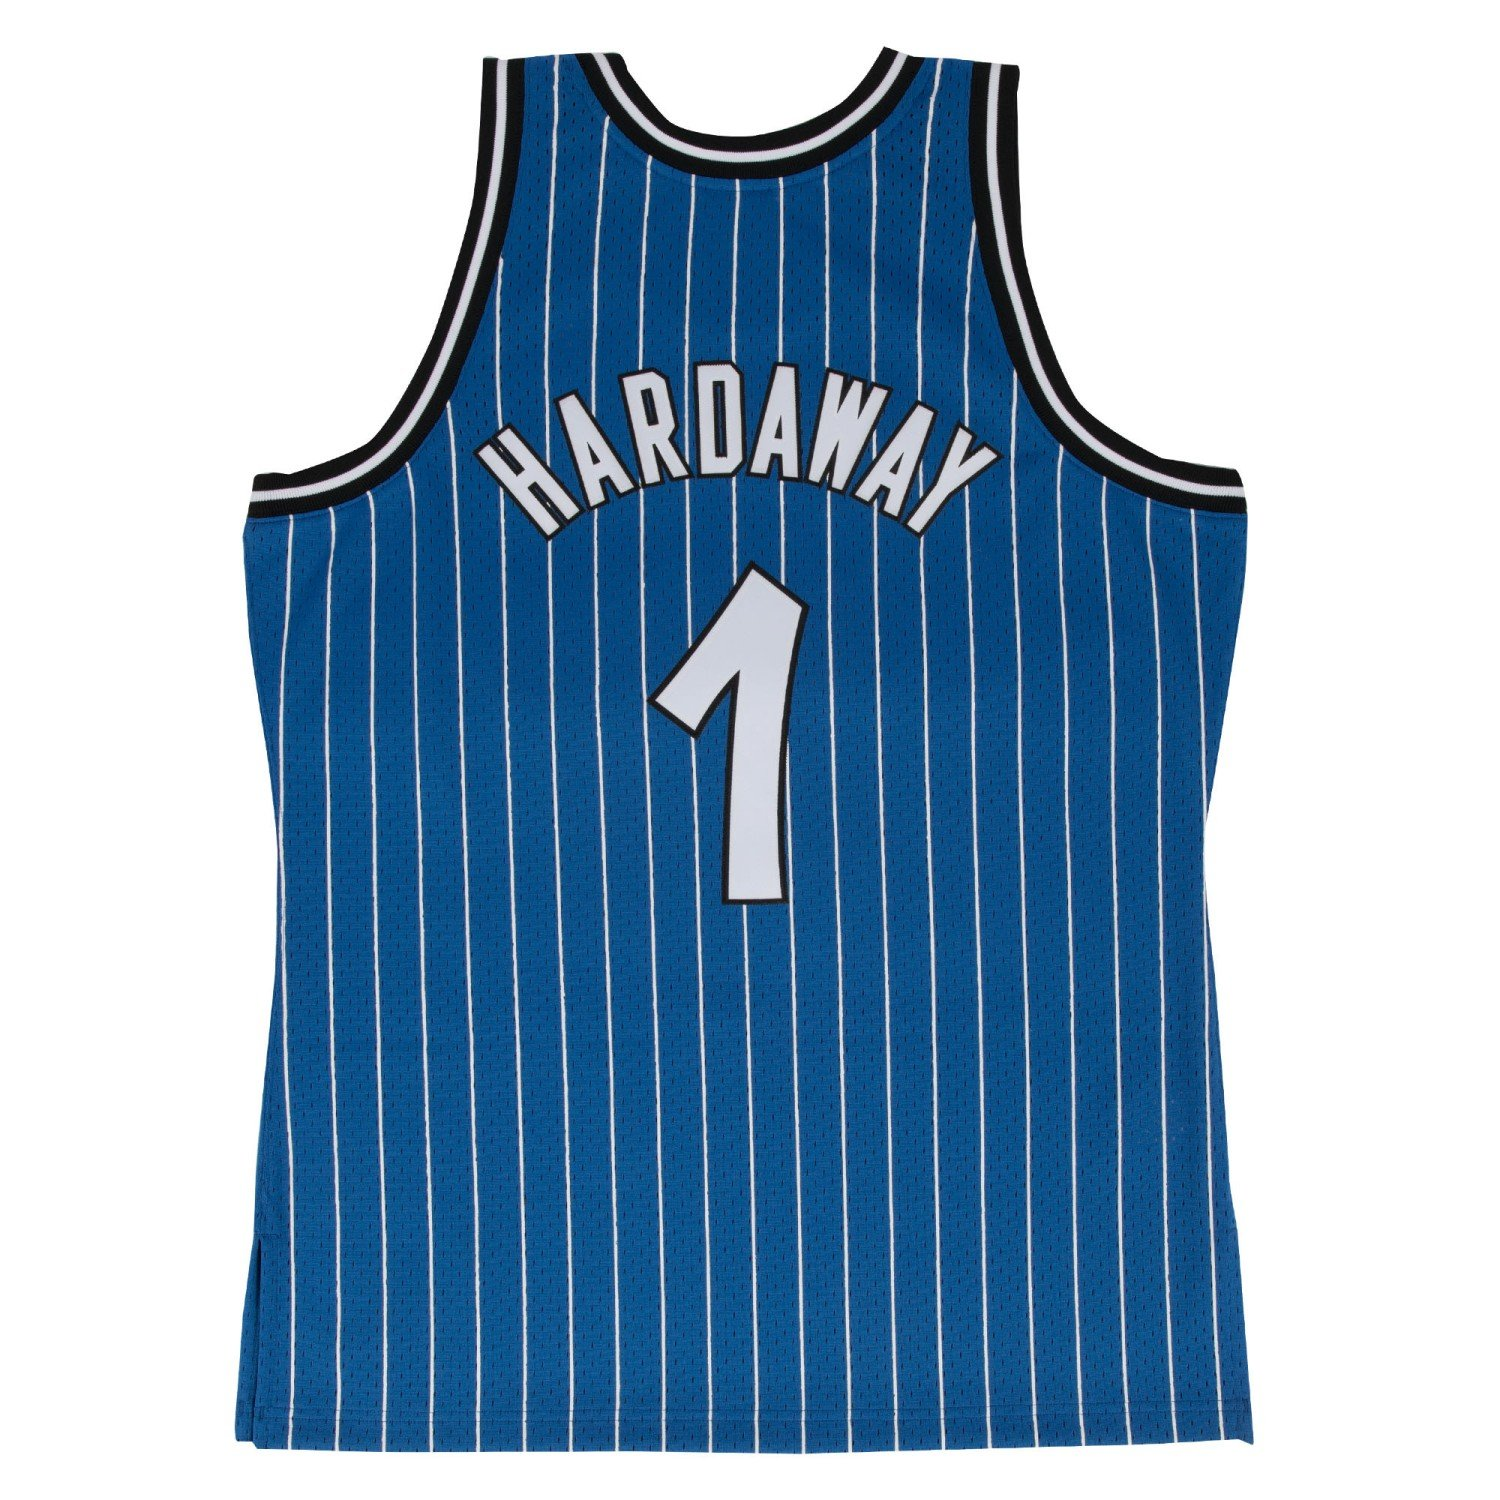 hot sale online a9c85 61828 Mitchell & Ness Men's Orlando Magic Anfernee Hardaway Swingman Jersey